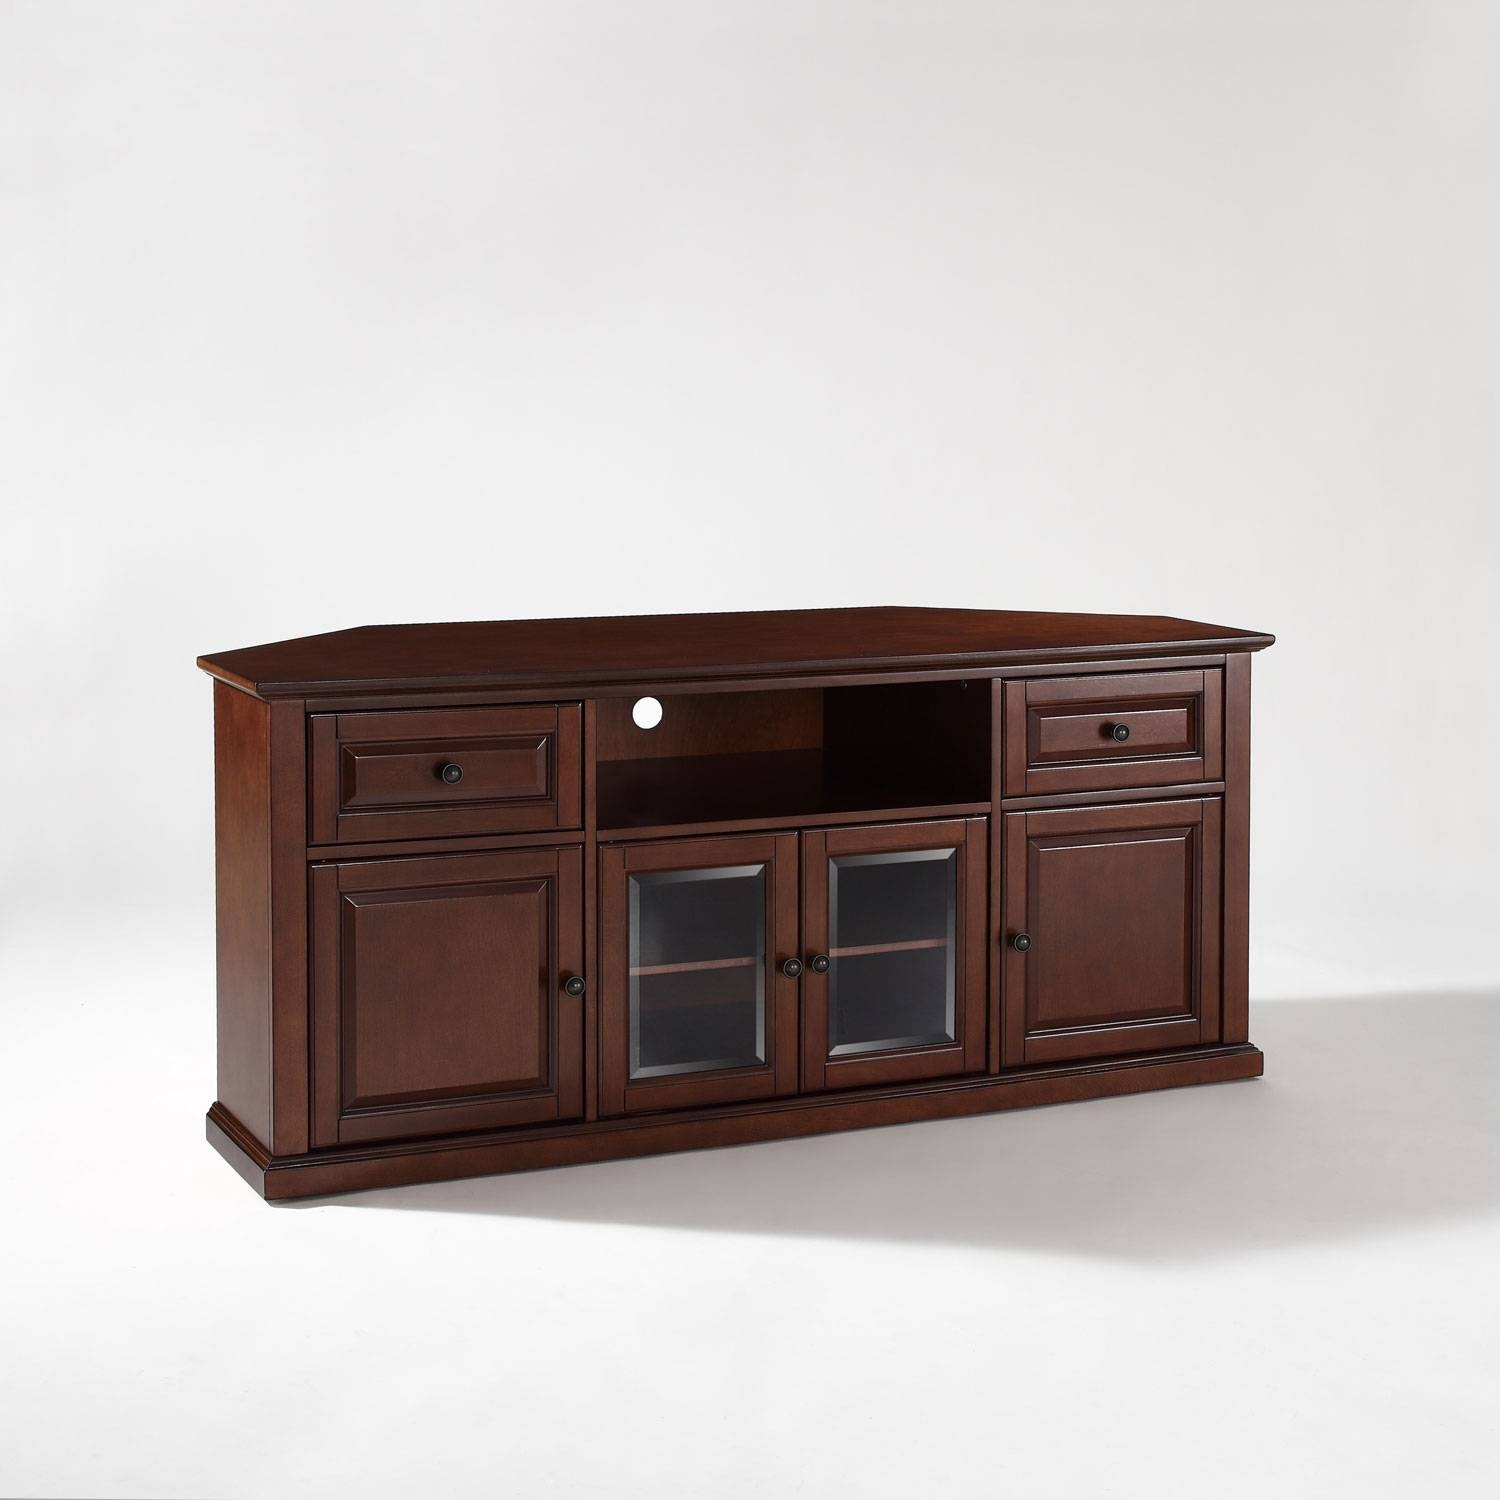 Tv Stands & Cabinets On Sale | Bellacor throughout 24 Inch Deep Tv Stands (Image 8 of 15)